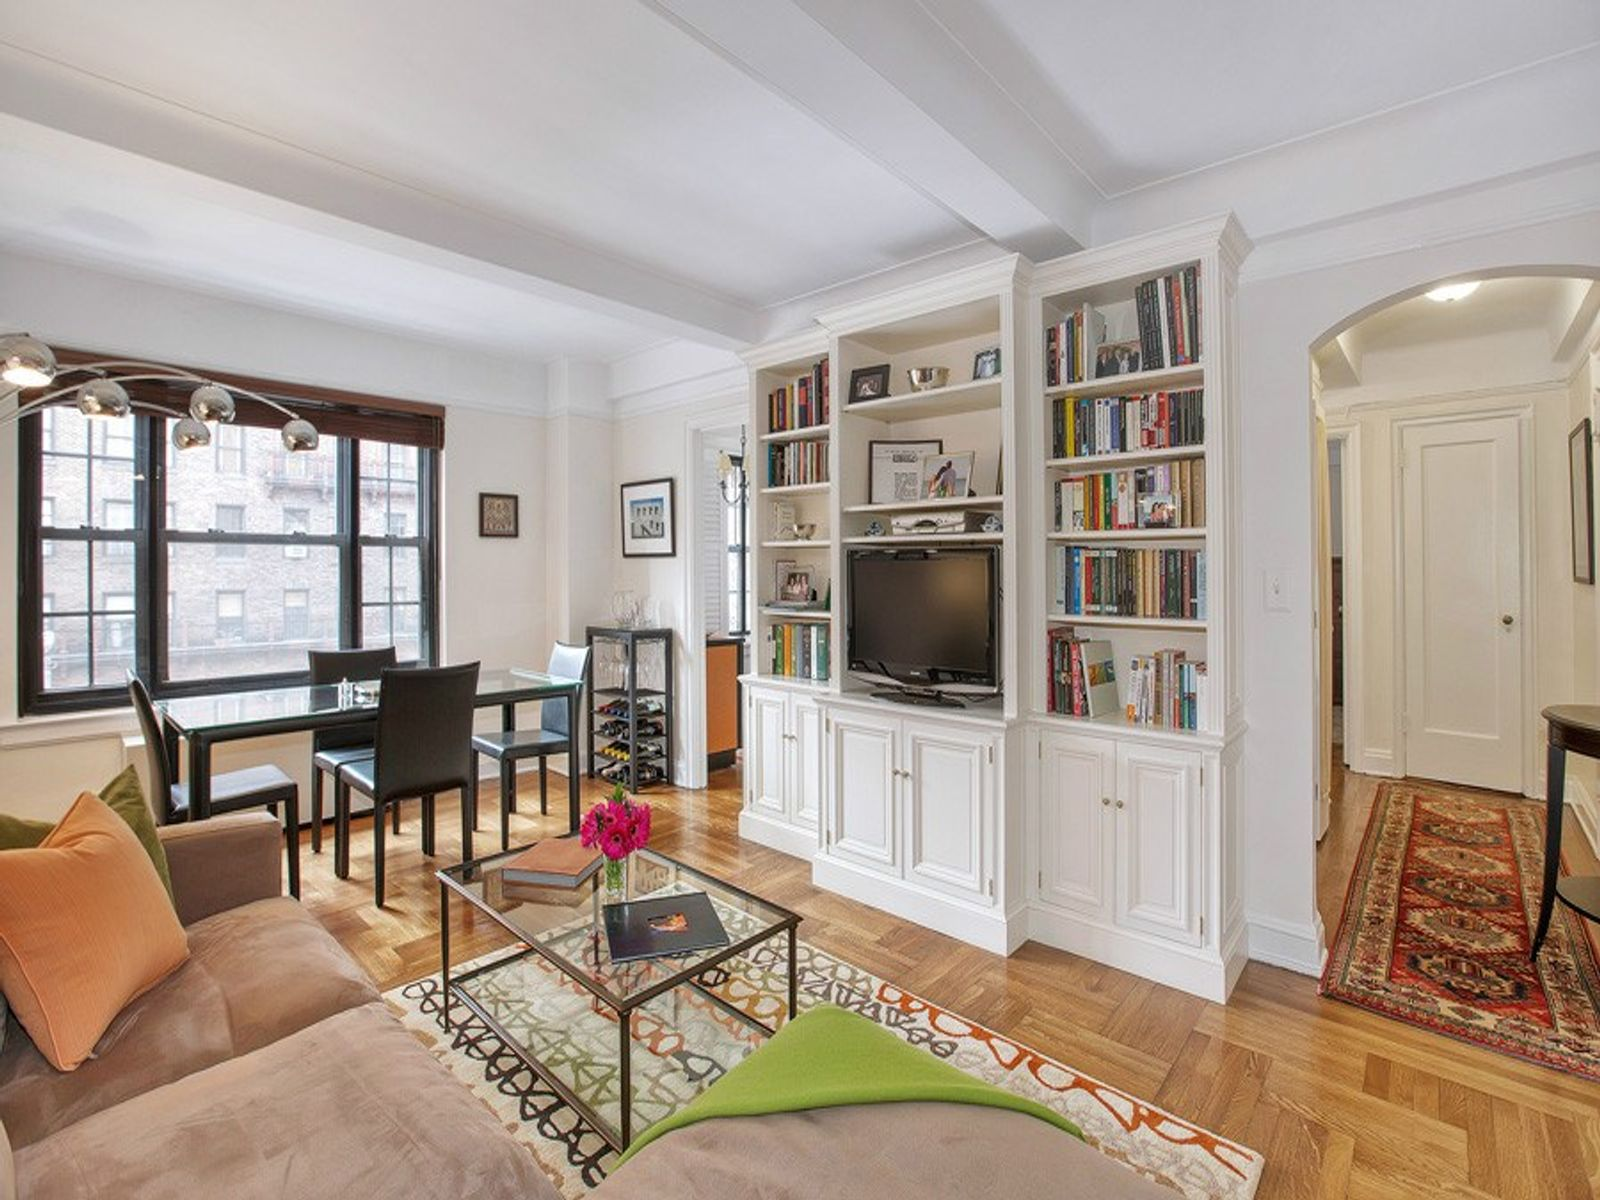 245 East 72nd Street, 4B, New York NY Cooperative - New York City Real Estate